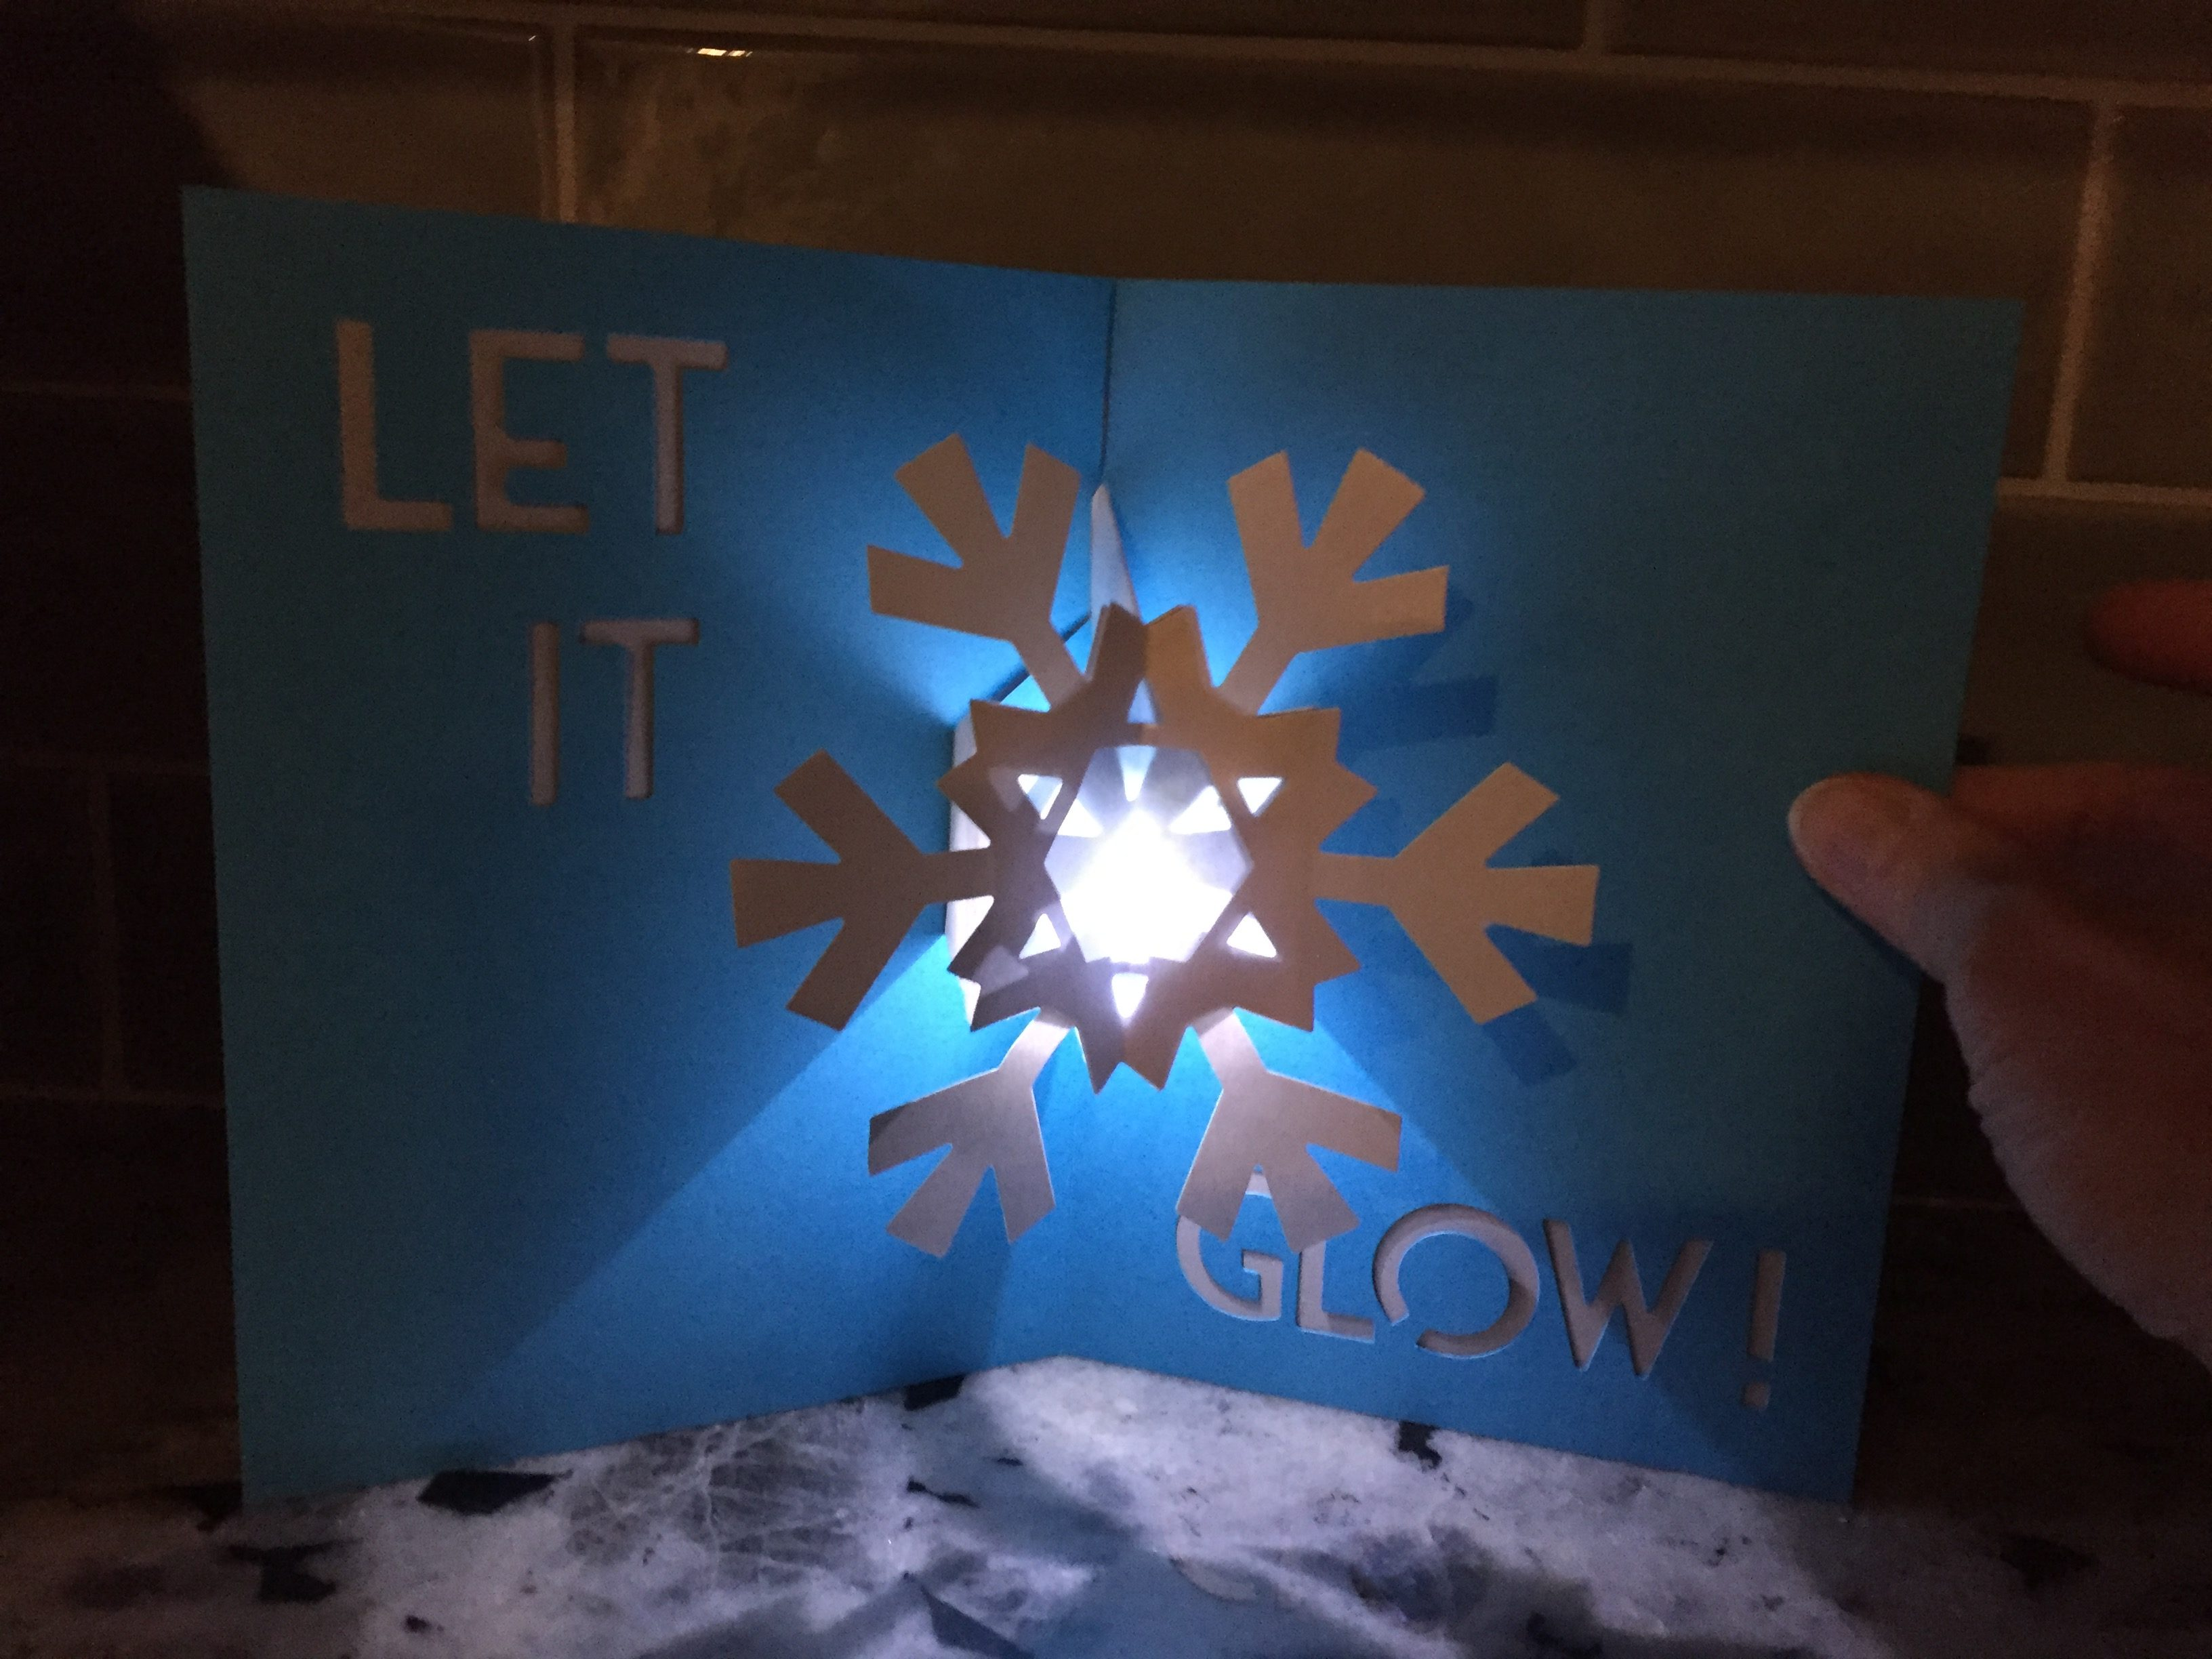 Bostontechmoms Stem Gift Ideas 2017 Bostontechmom Littlebits Fun Way For Kids To Build Circuits And Make Things They You Get Your Own Light Up Pop Card Learn About This Is A Good Teach How Incorporate Electronics Into Design